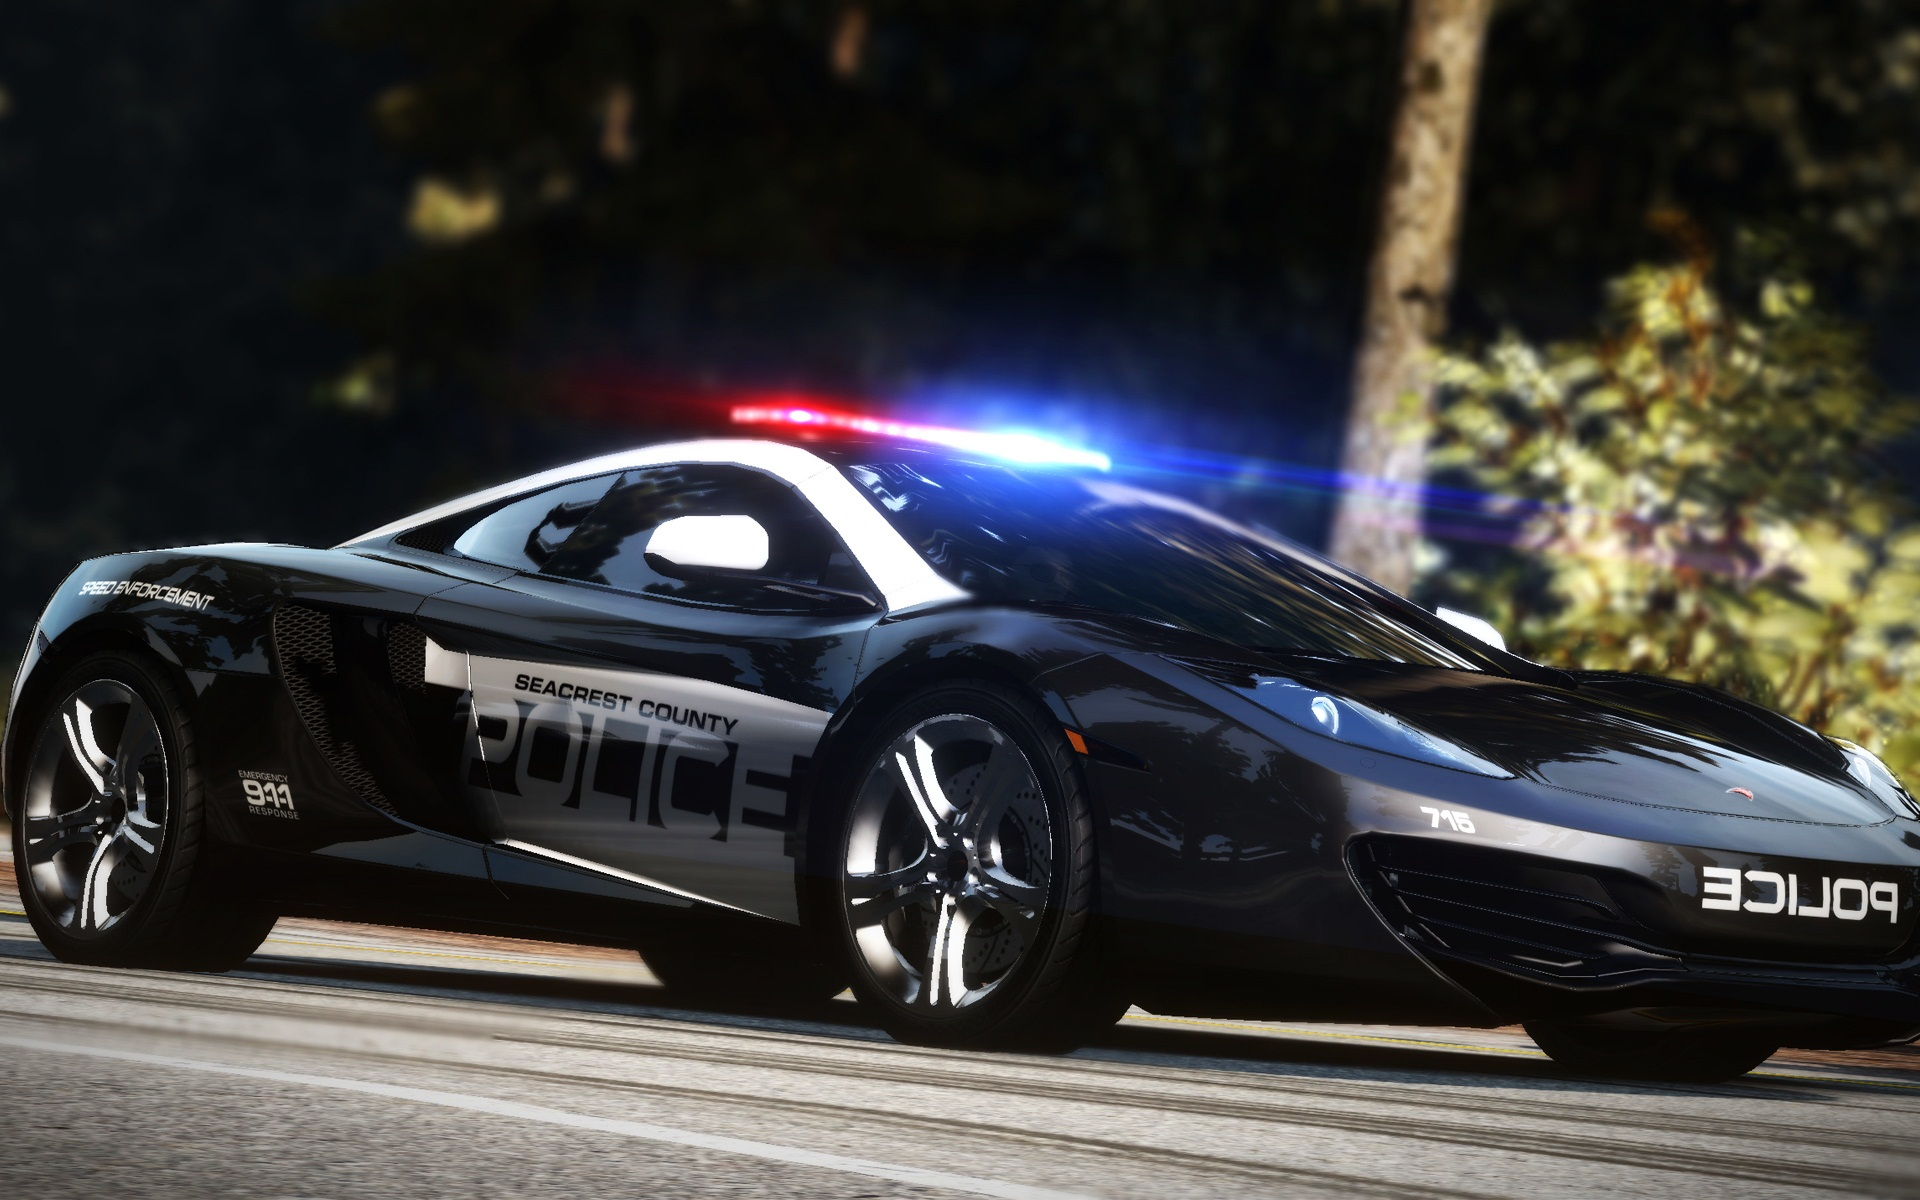 NFS Hot Pursuit Cop Car